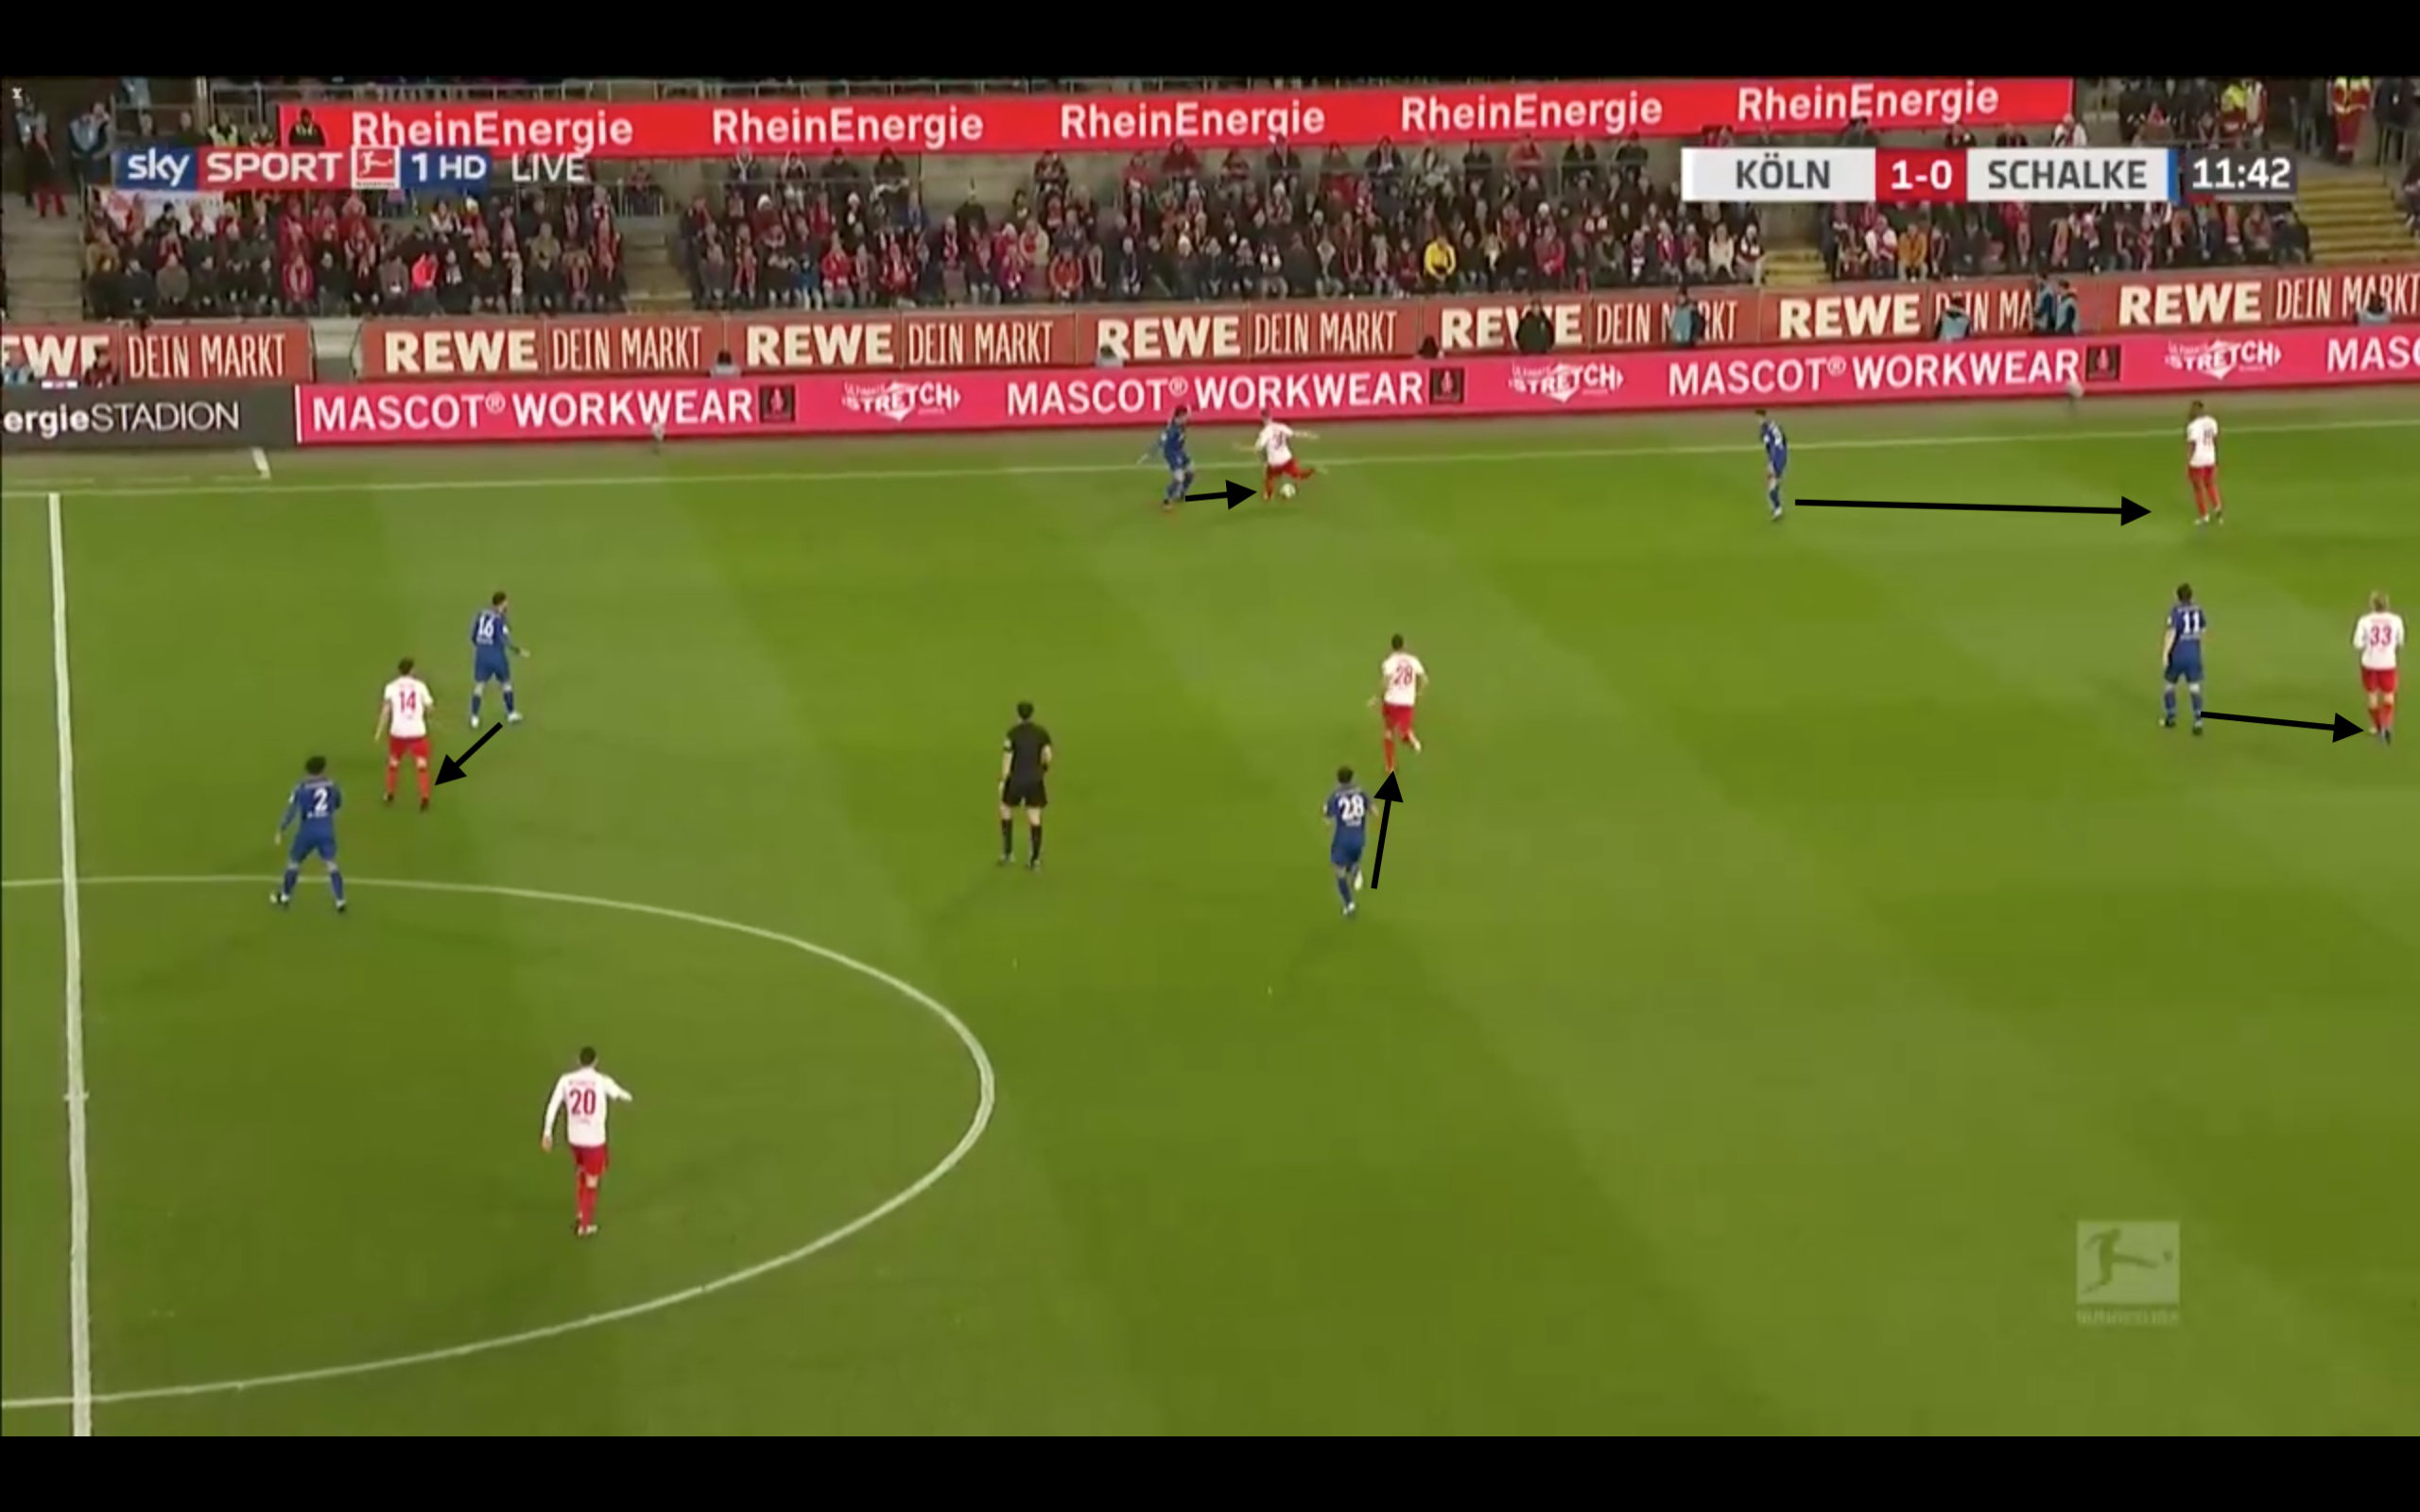 Bundesliga 2019/20: 1. FC Köln vs Schalke 04 – tactical analysis